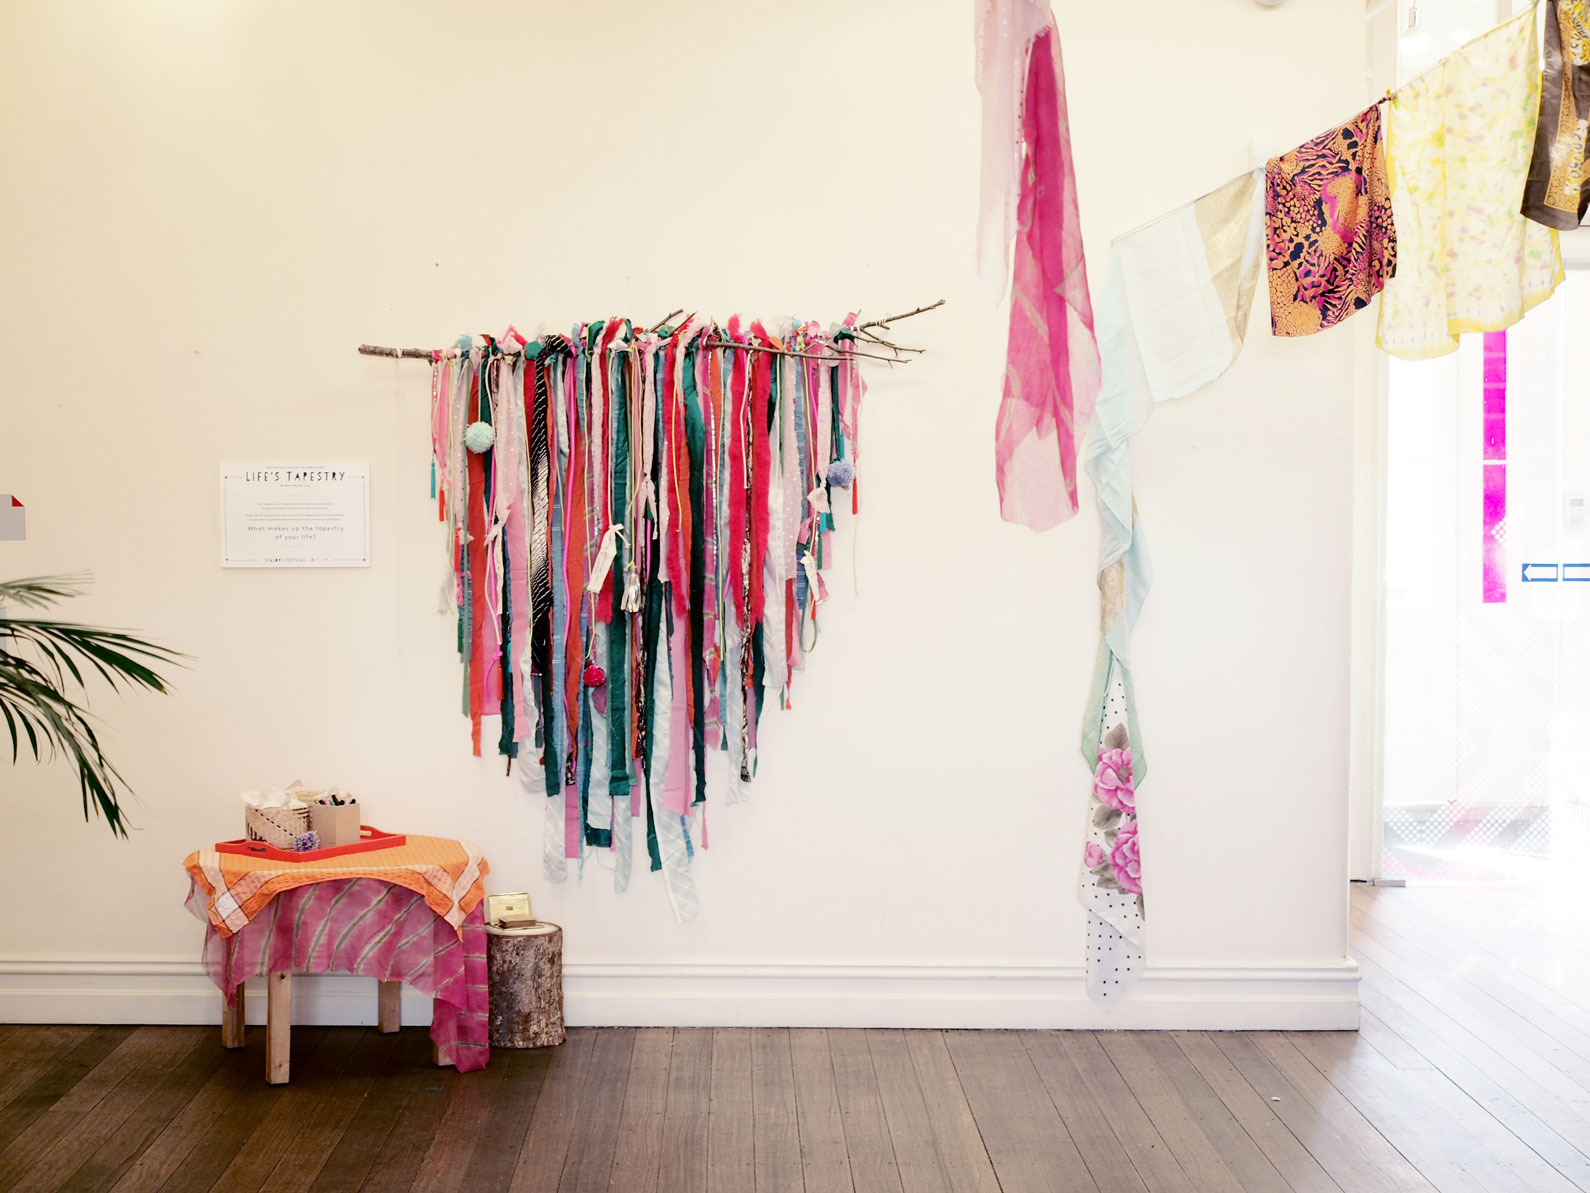 Studio-Mimi-Moon-Styling-Installation-event-at-Boyd-City-of-Melbourne-1